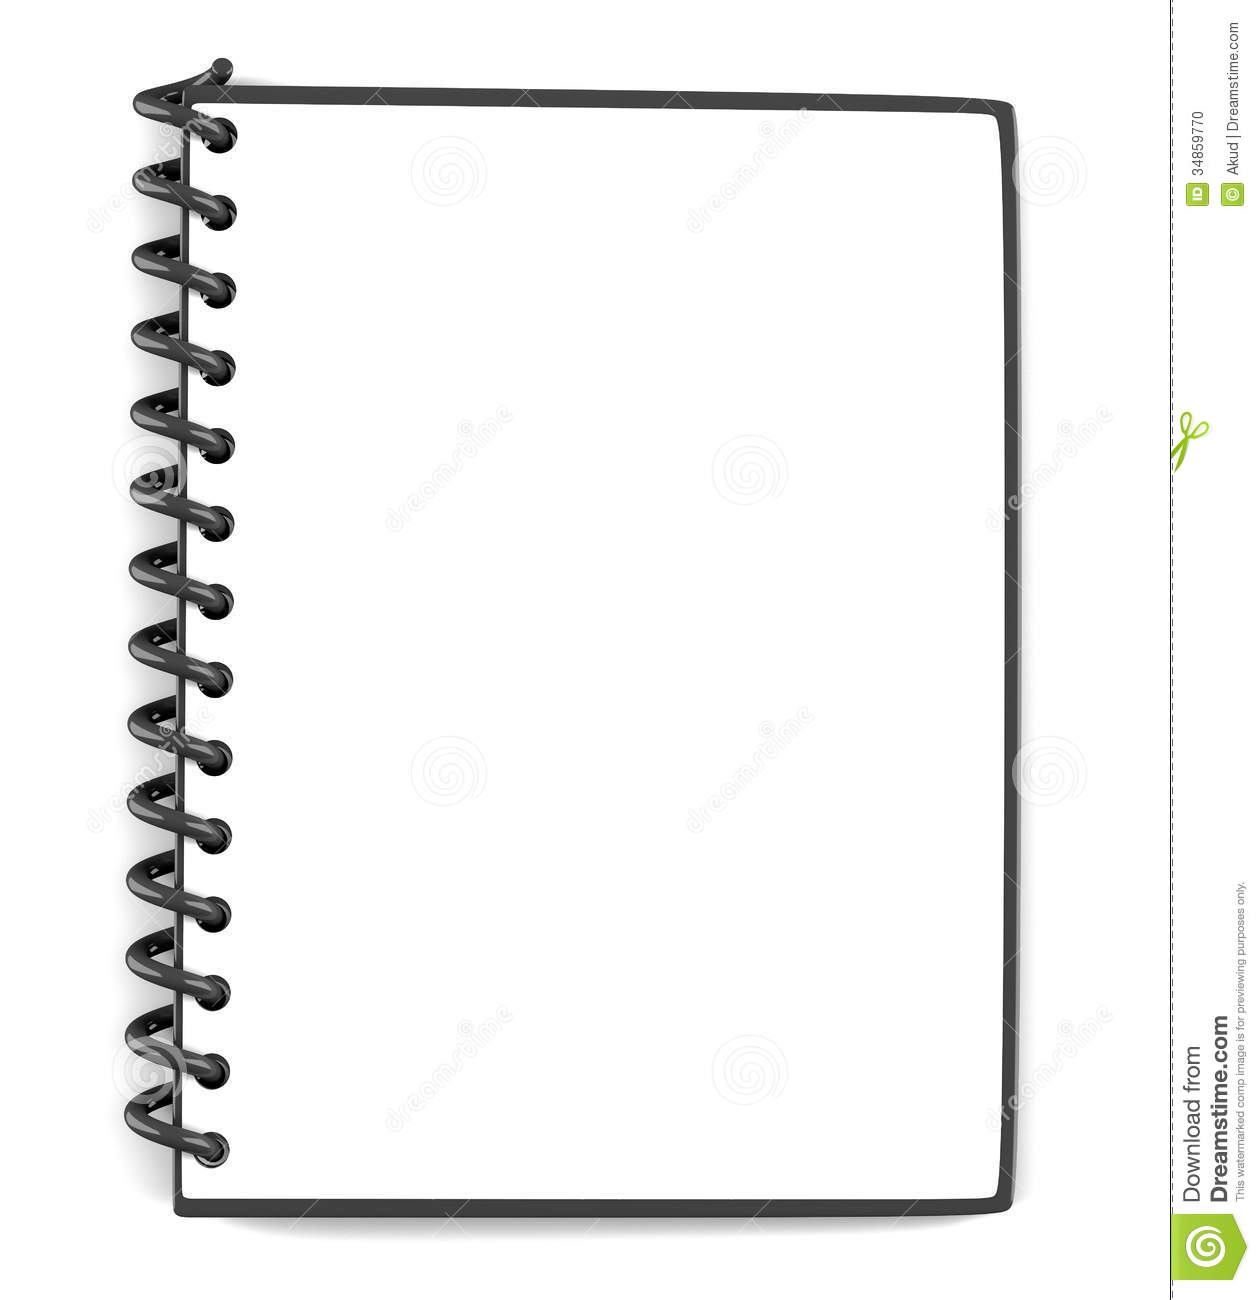 Blank Notepad Clipart - Clipart Kid